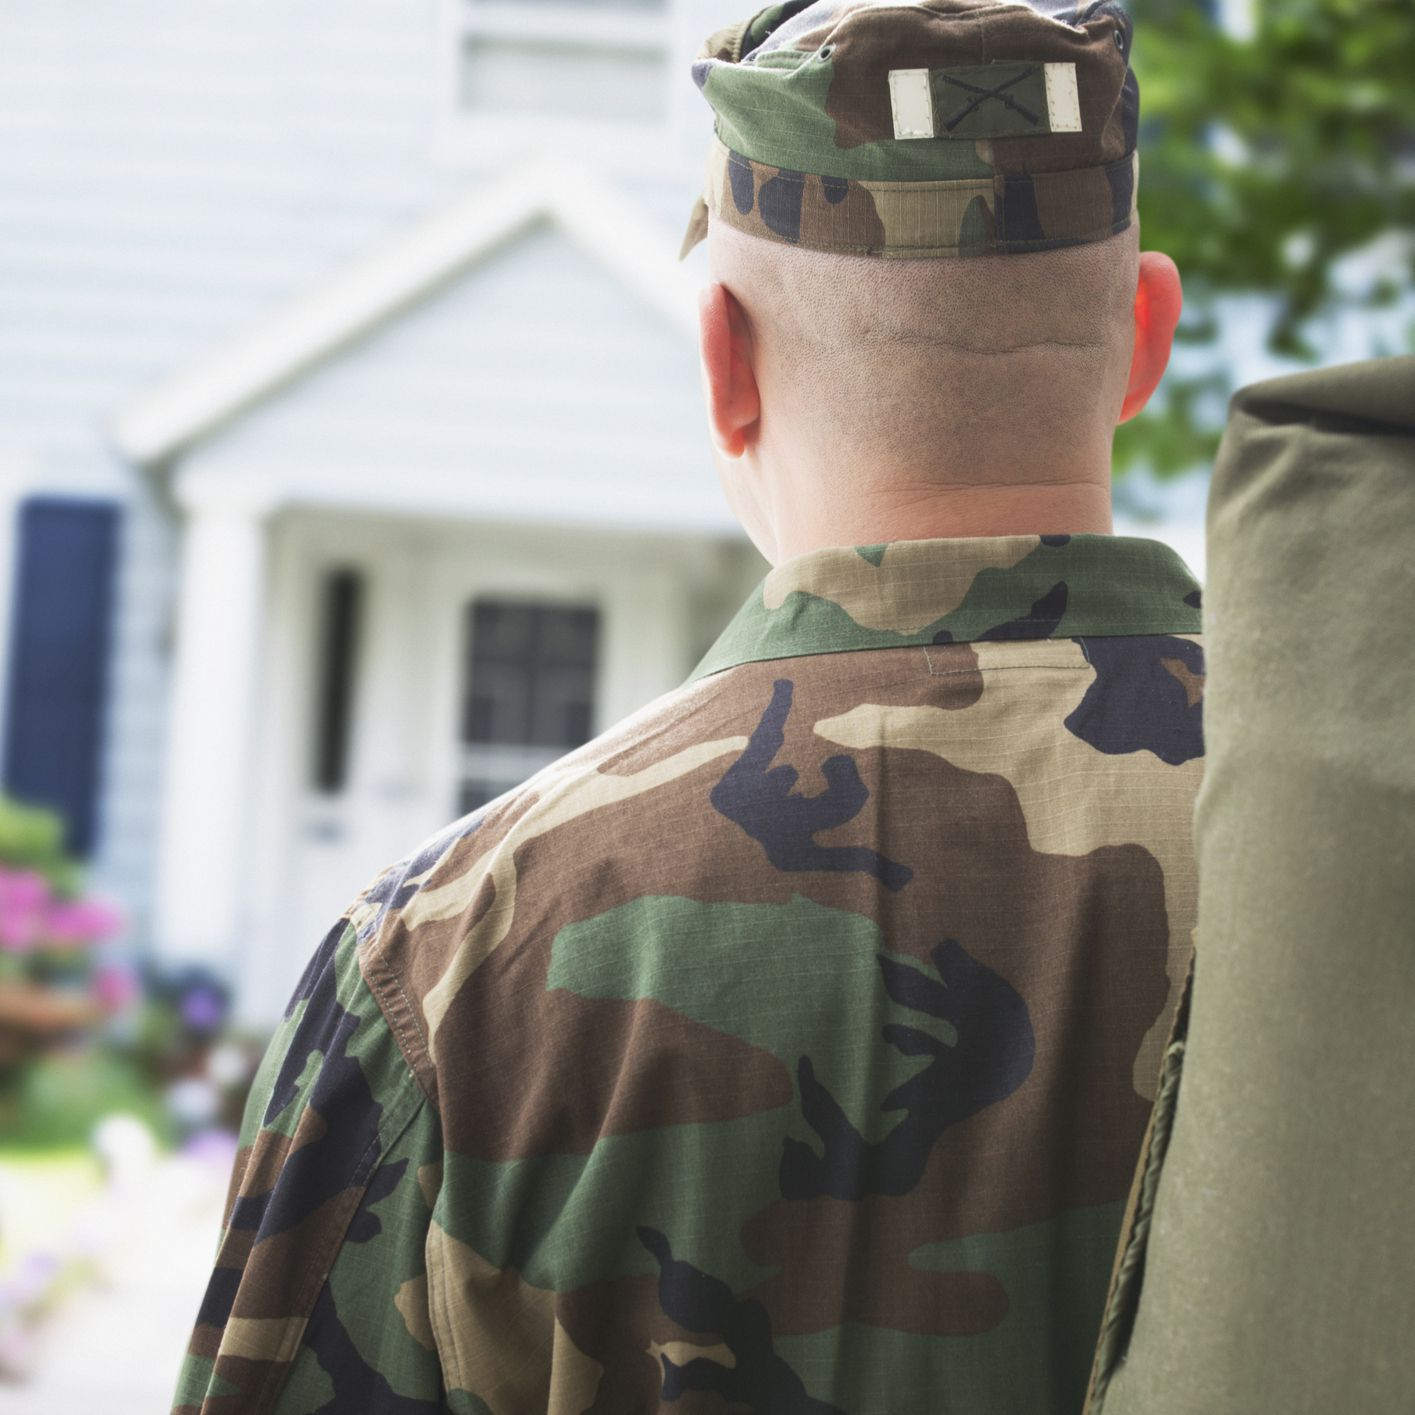 Rejoining The Military With Prior Service